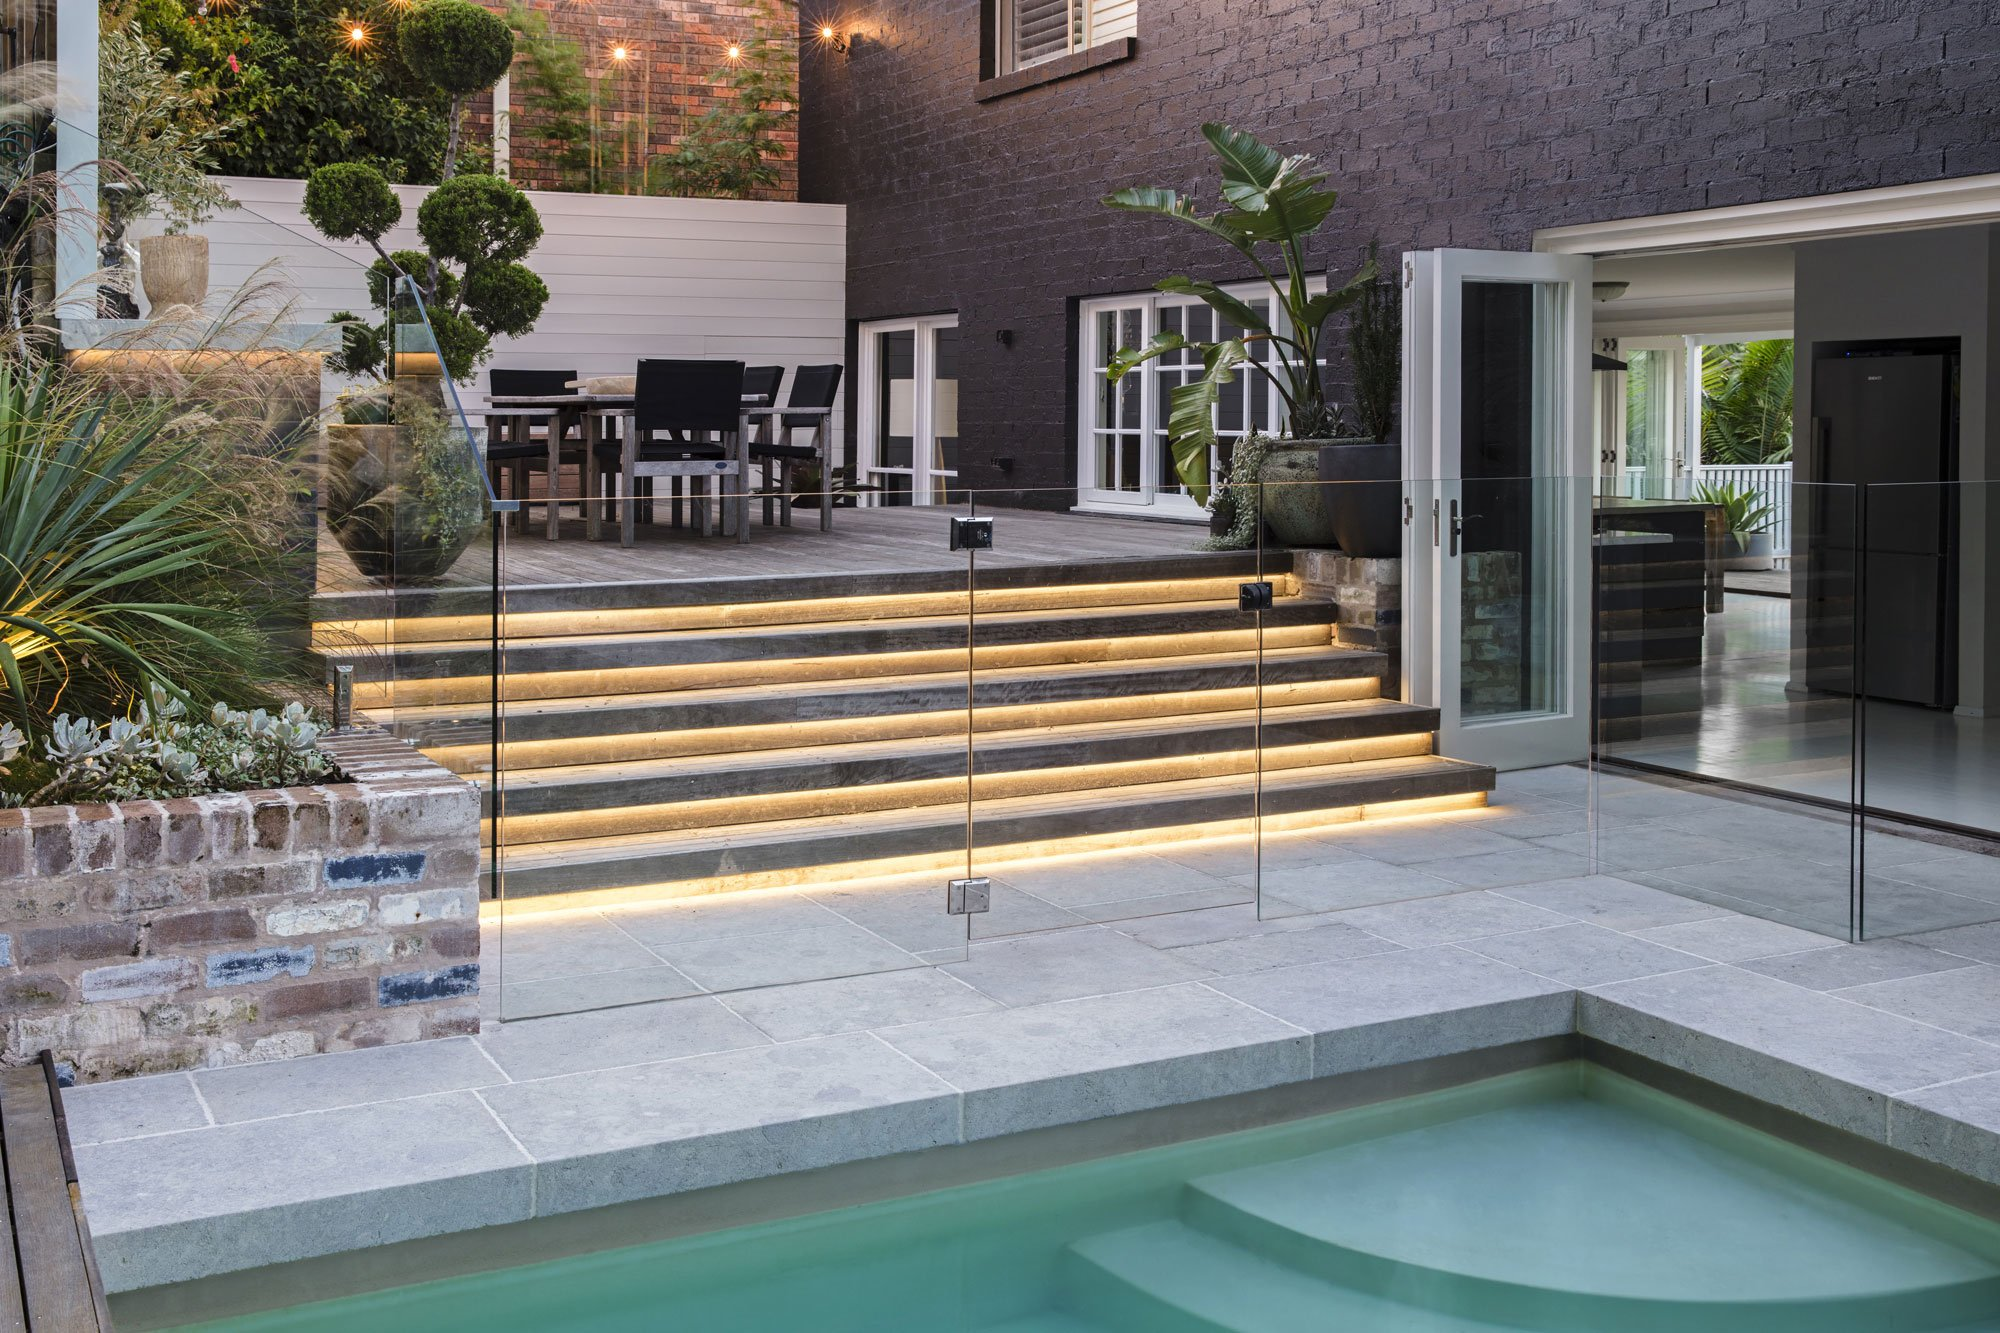 Open garden design with an in-ground pool and seating area